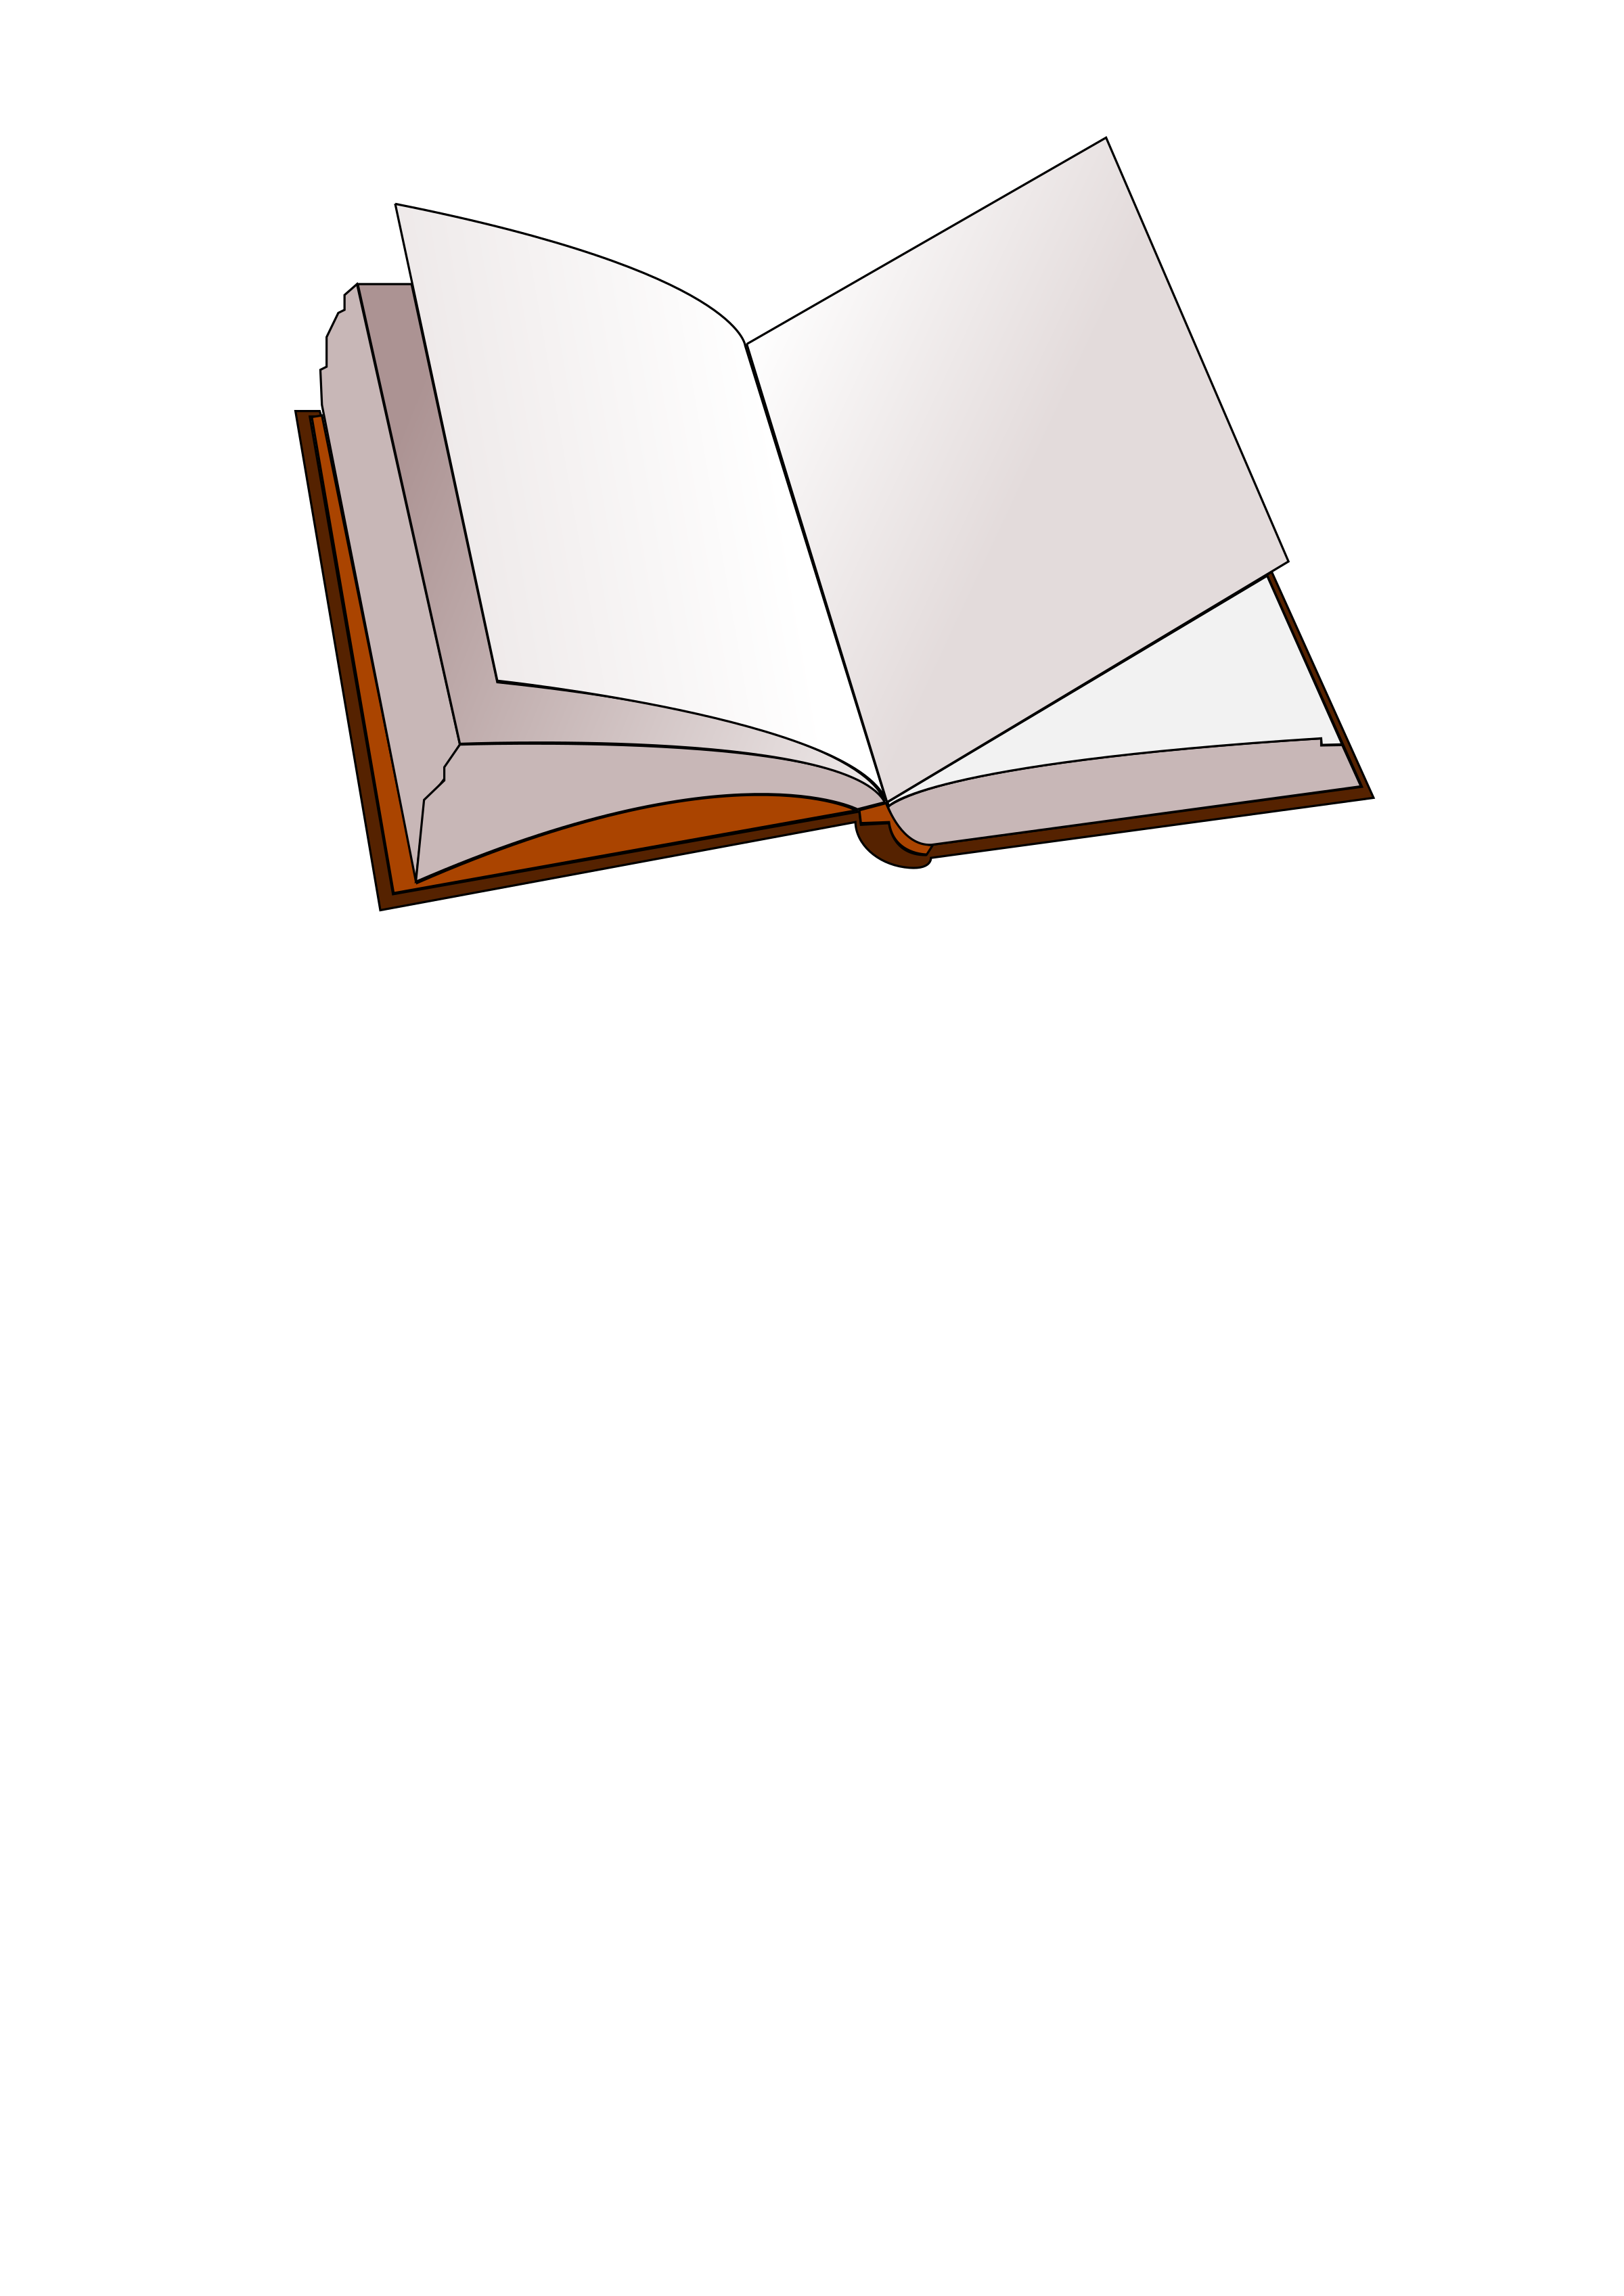 Image png. Big clipart open book